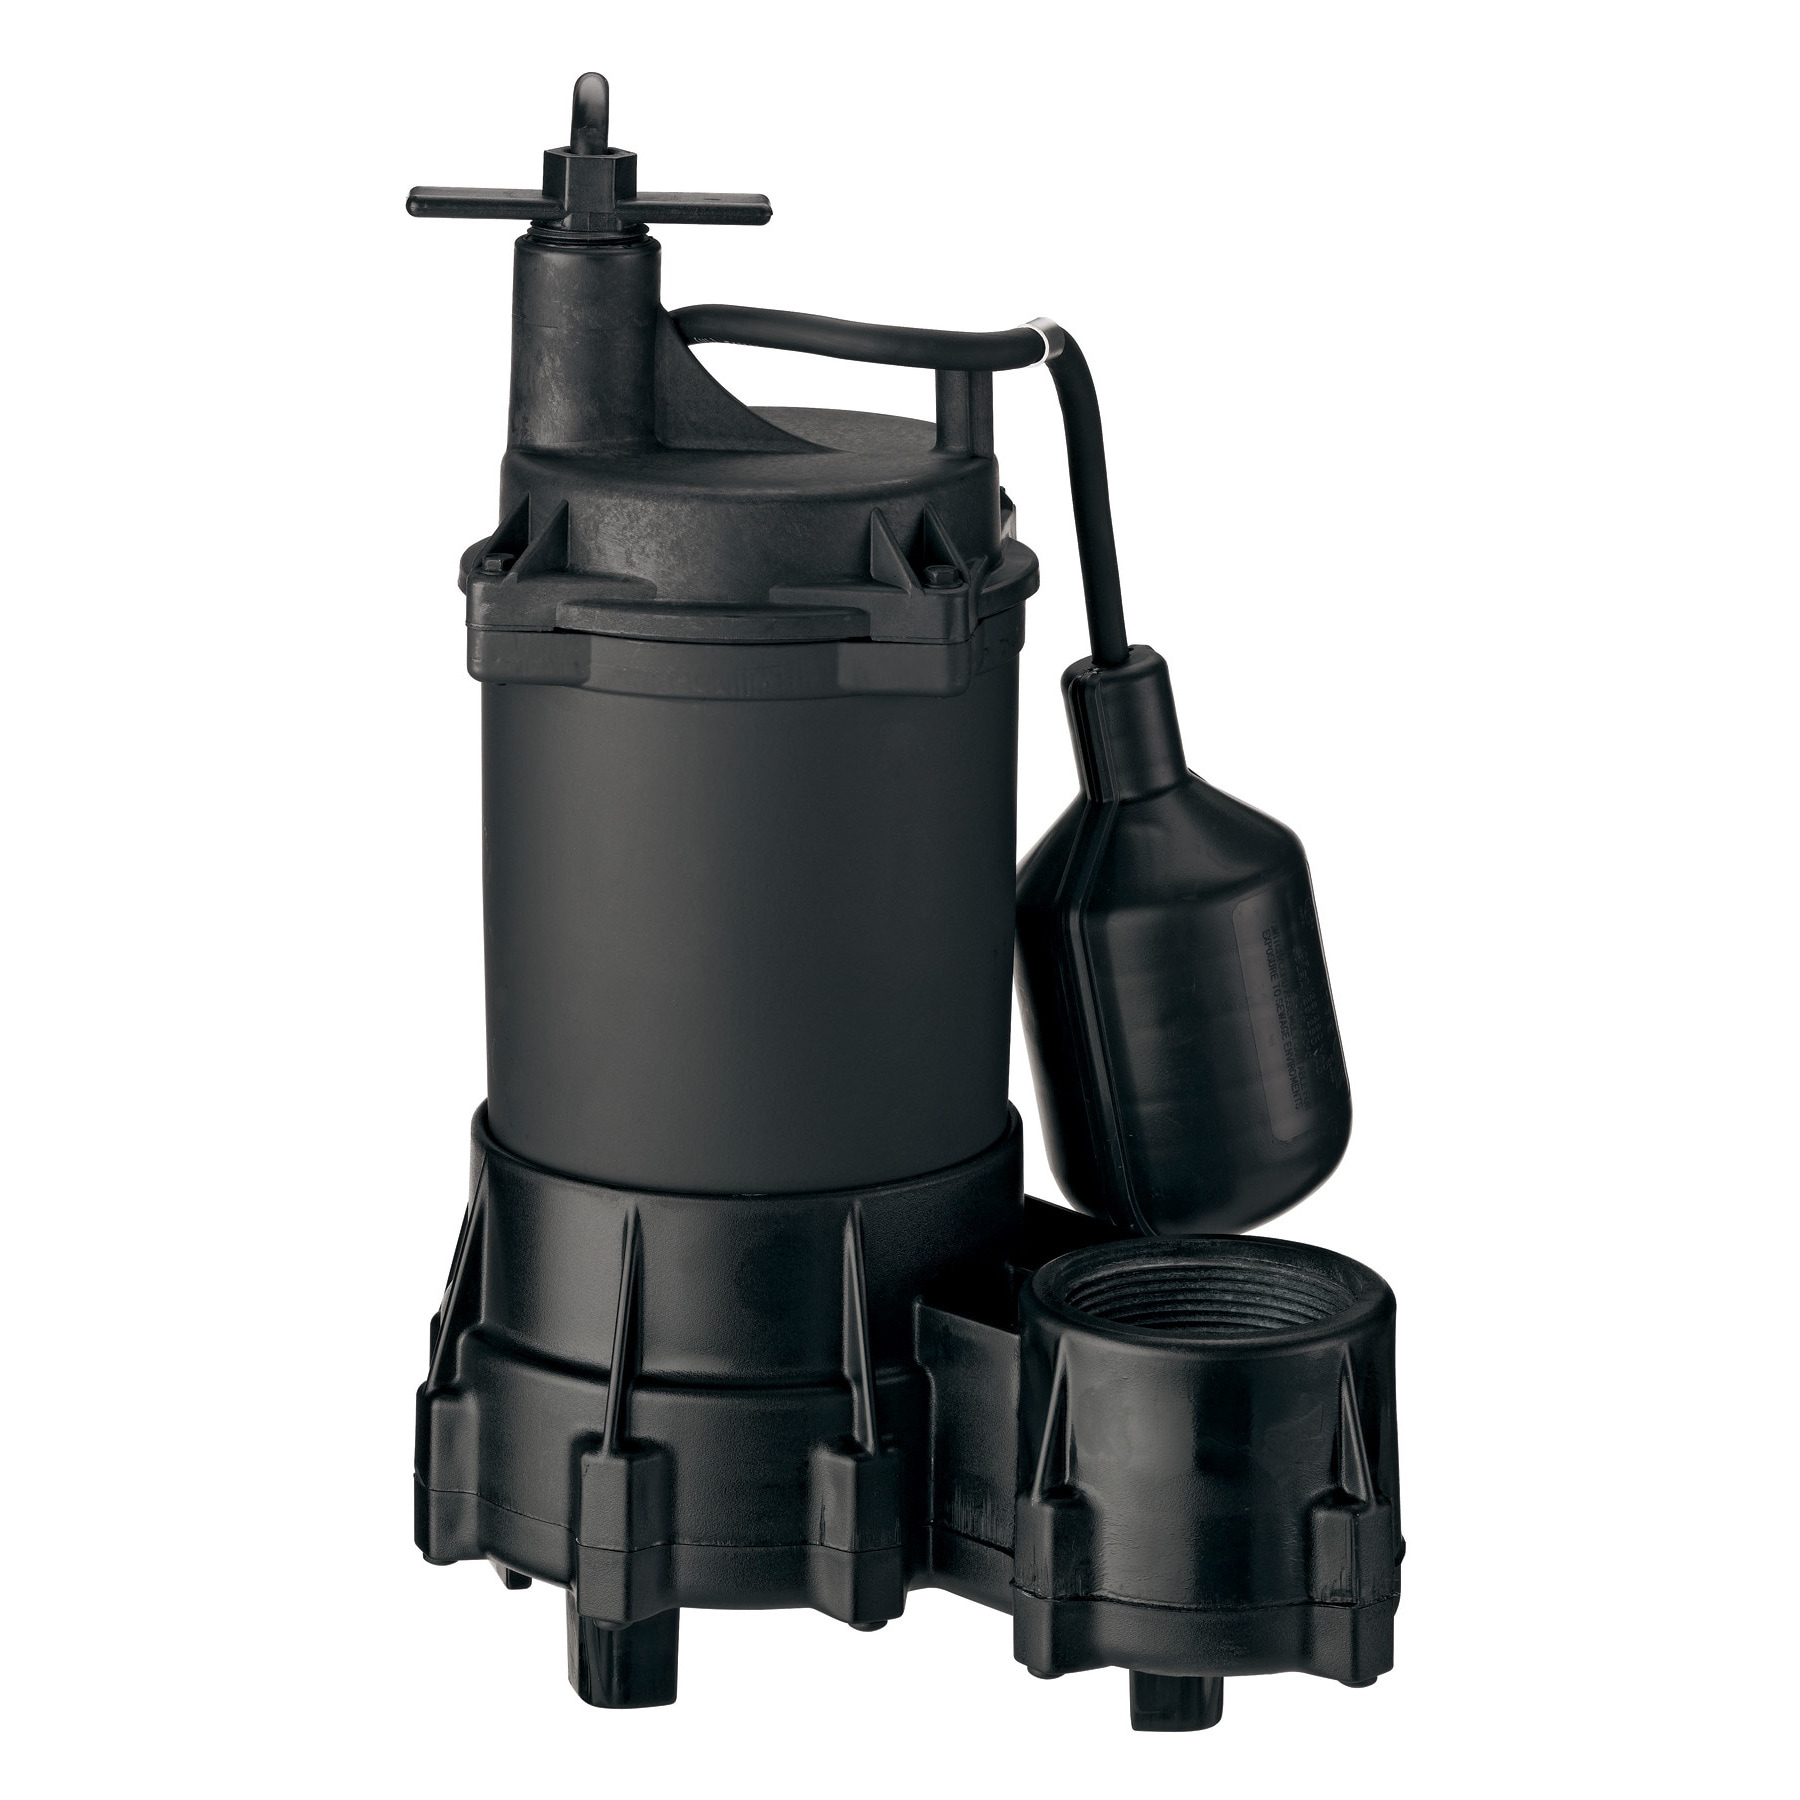 Jensen Flotec FPSE2800A 1/3 HP Submersible Effluent Pump ...